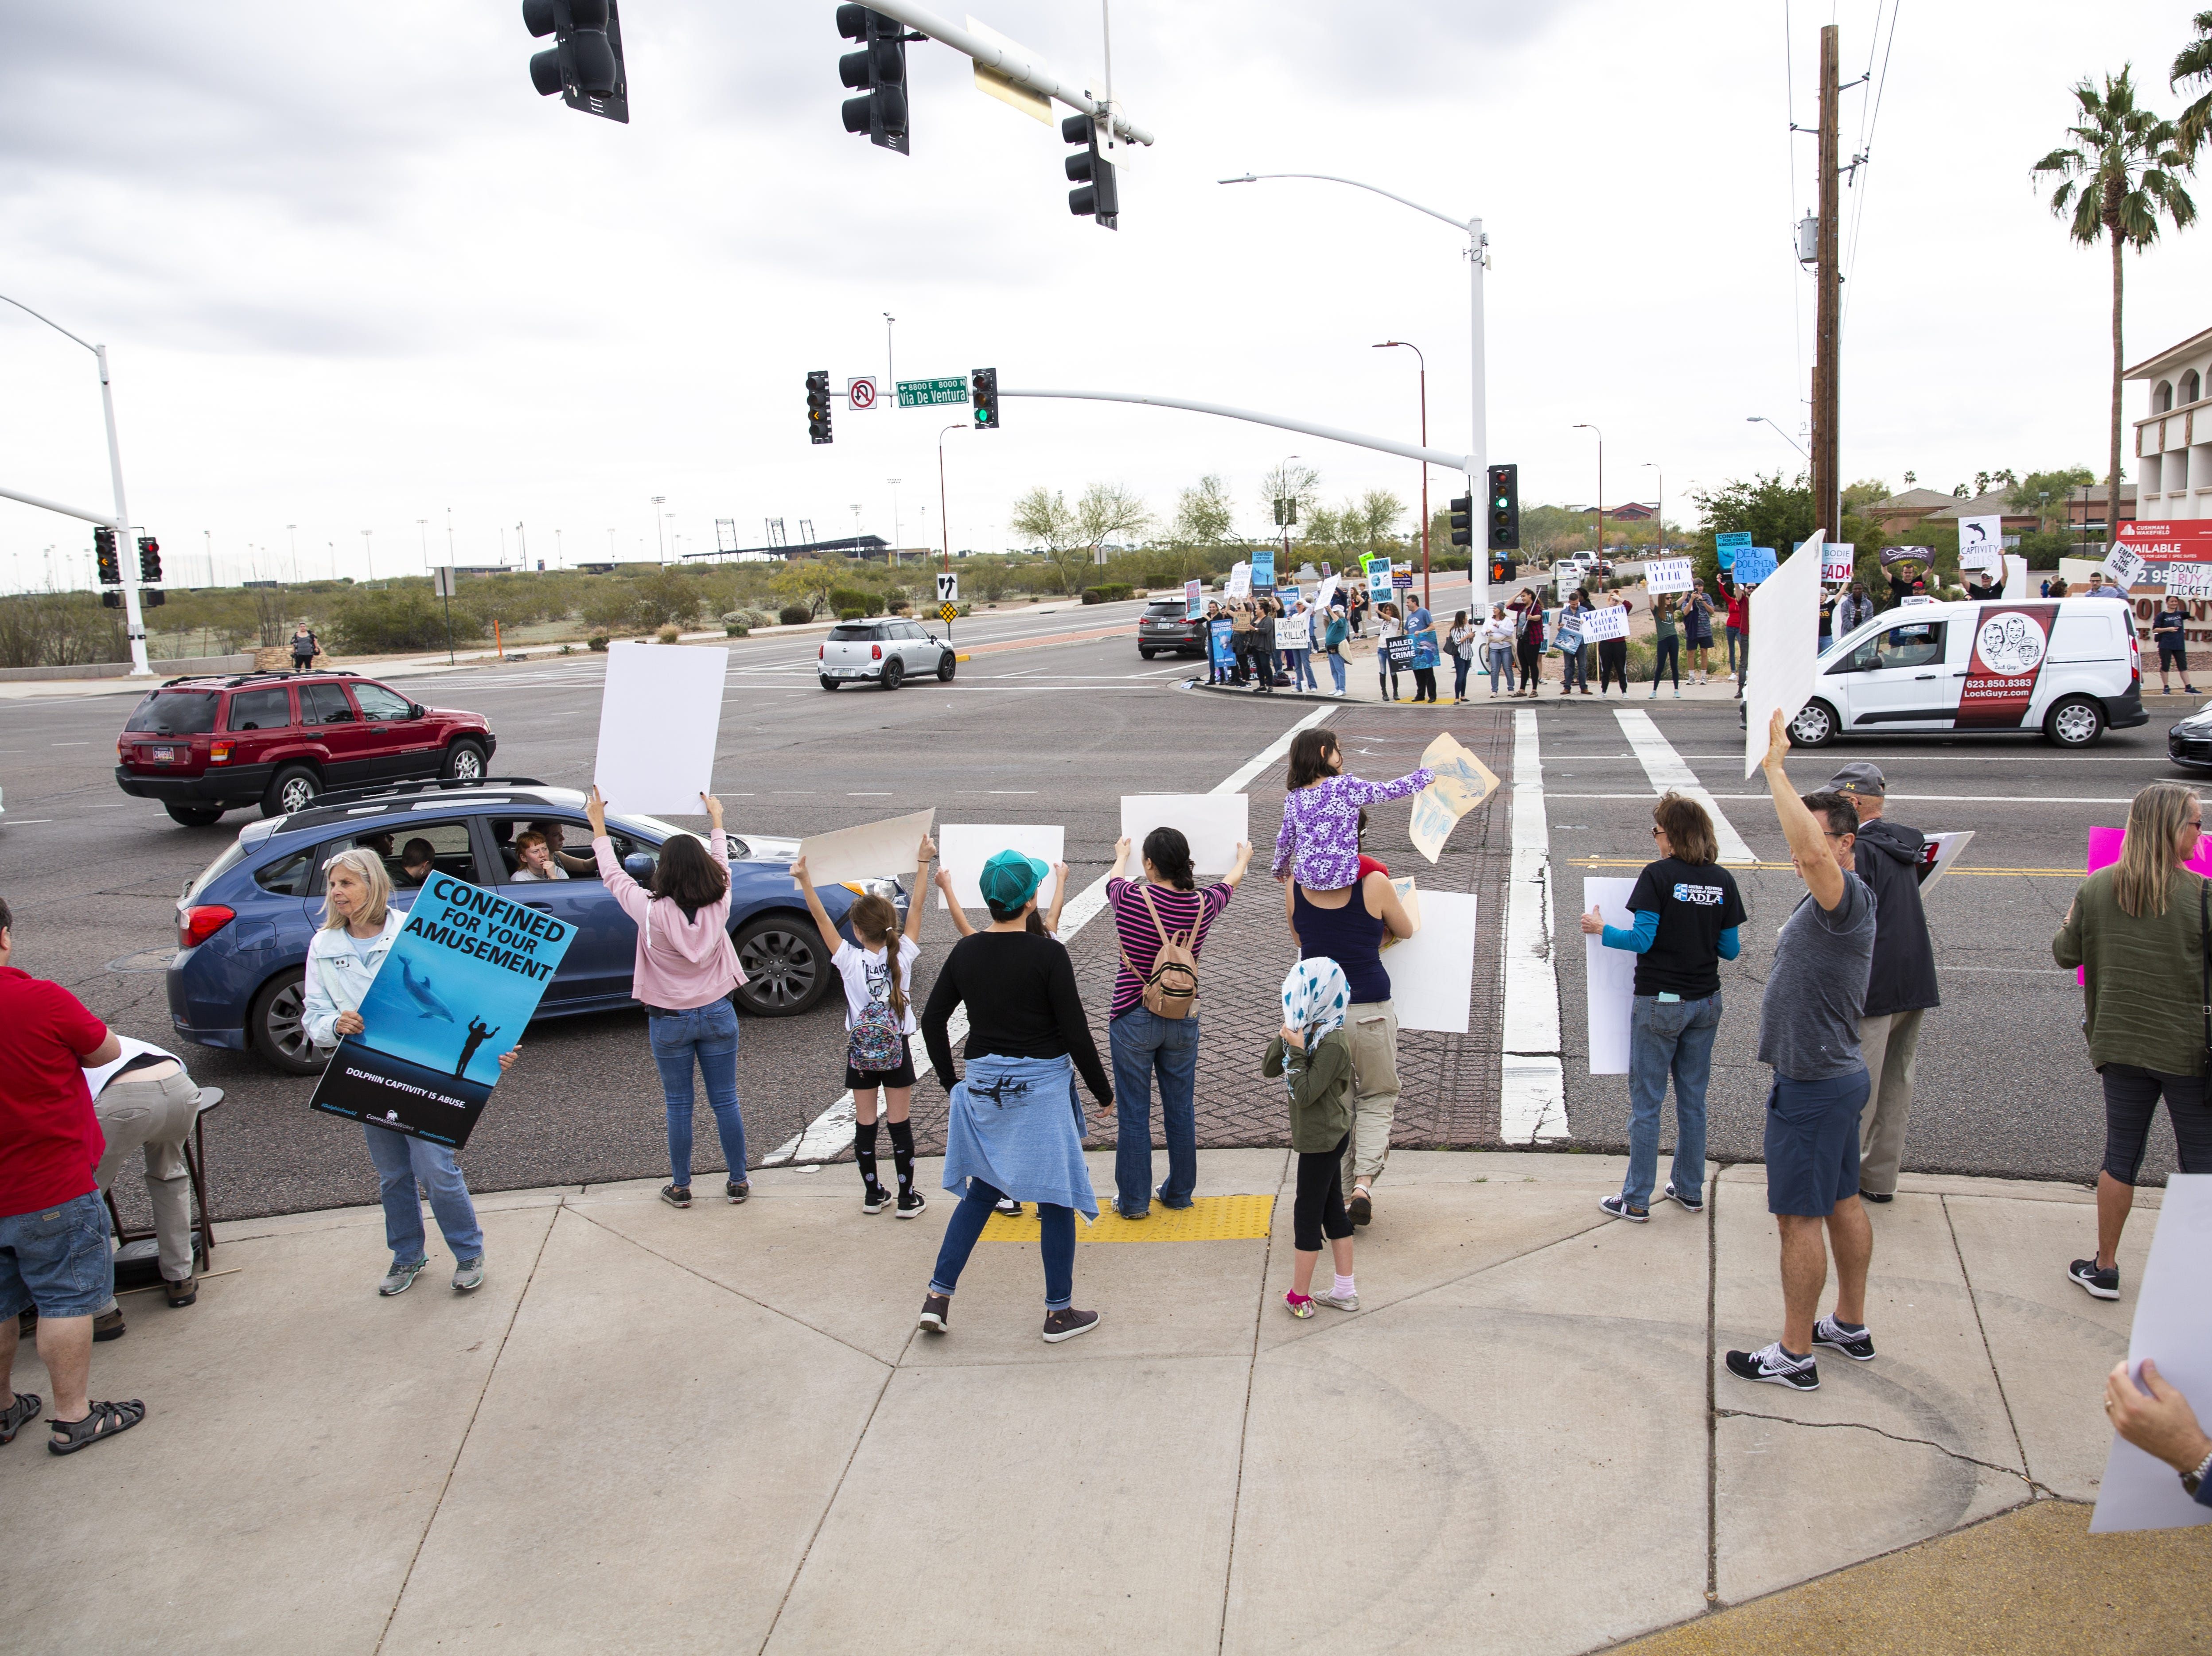 About 240 people had joined in the protest against Dolphinaris by 12 p.m. at the intersection of E. Via de Ventura and N. Pima Road in Scottsdale on Feb. 2, 2019.